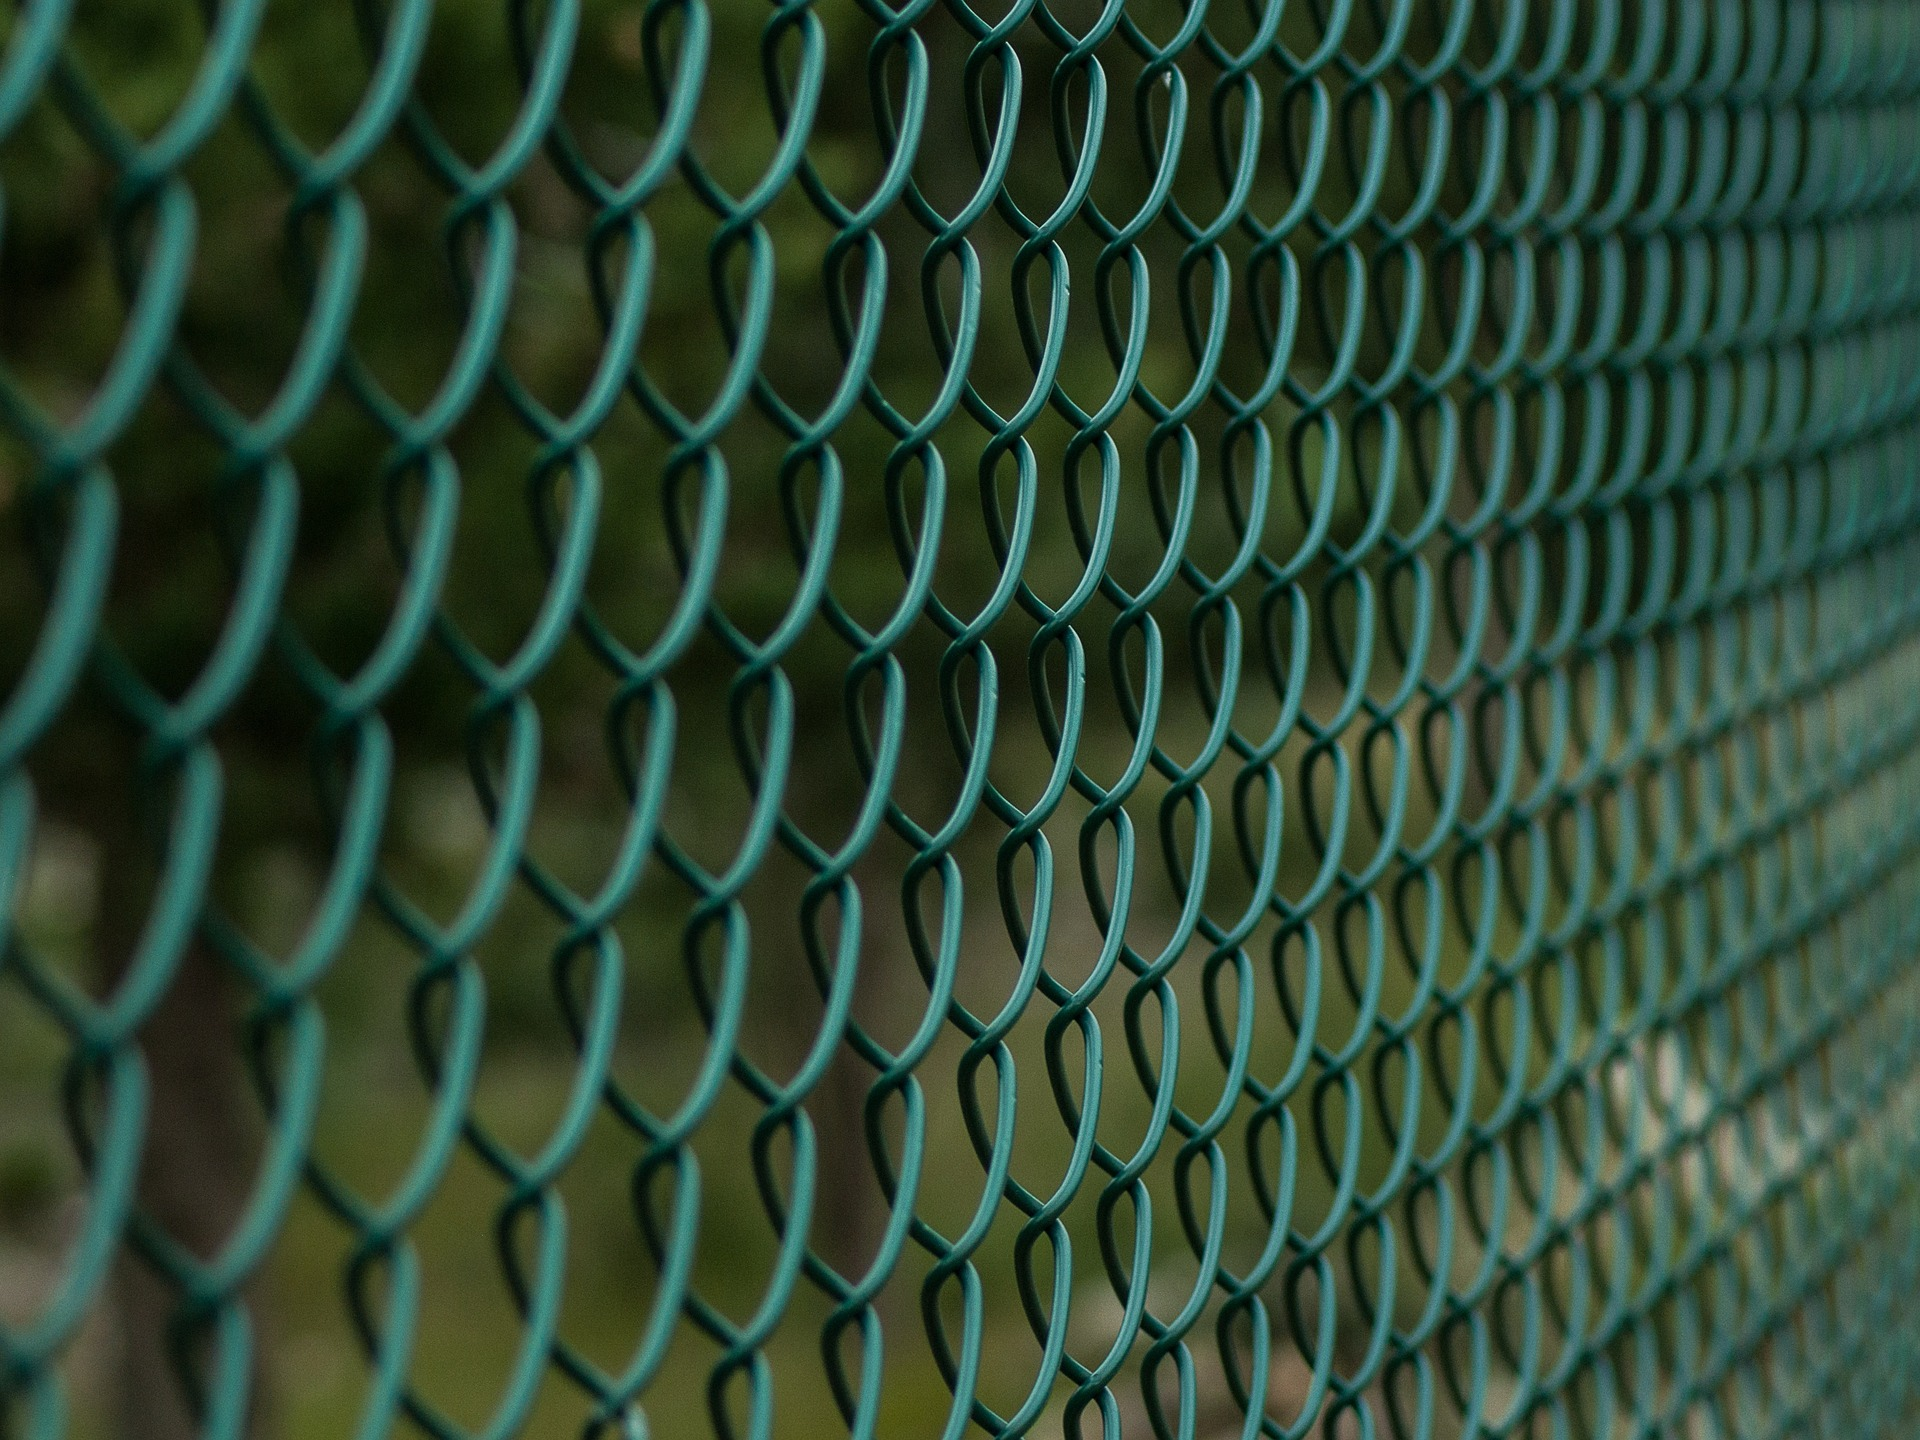 fence-1161128_1920